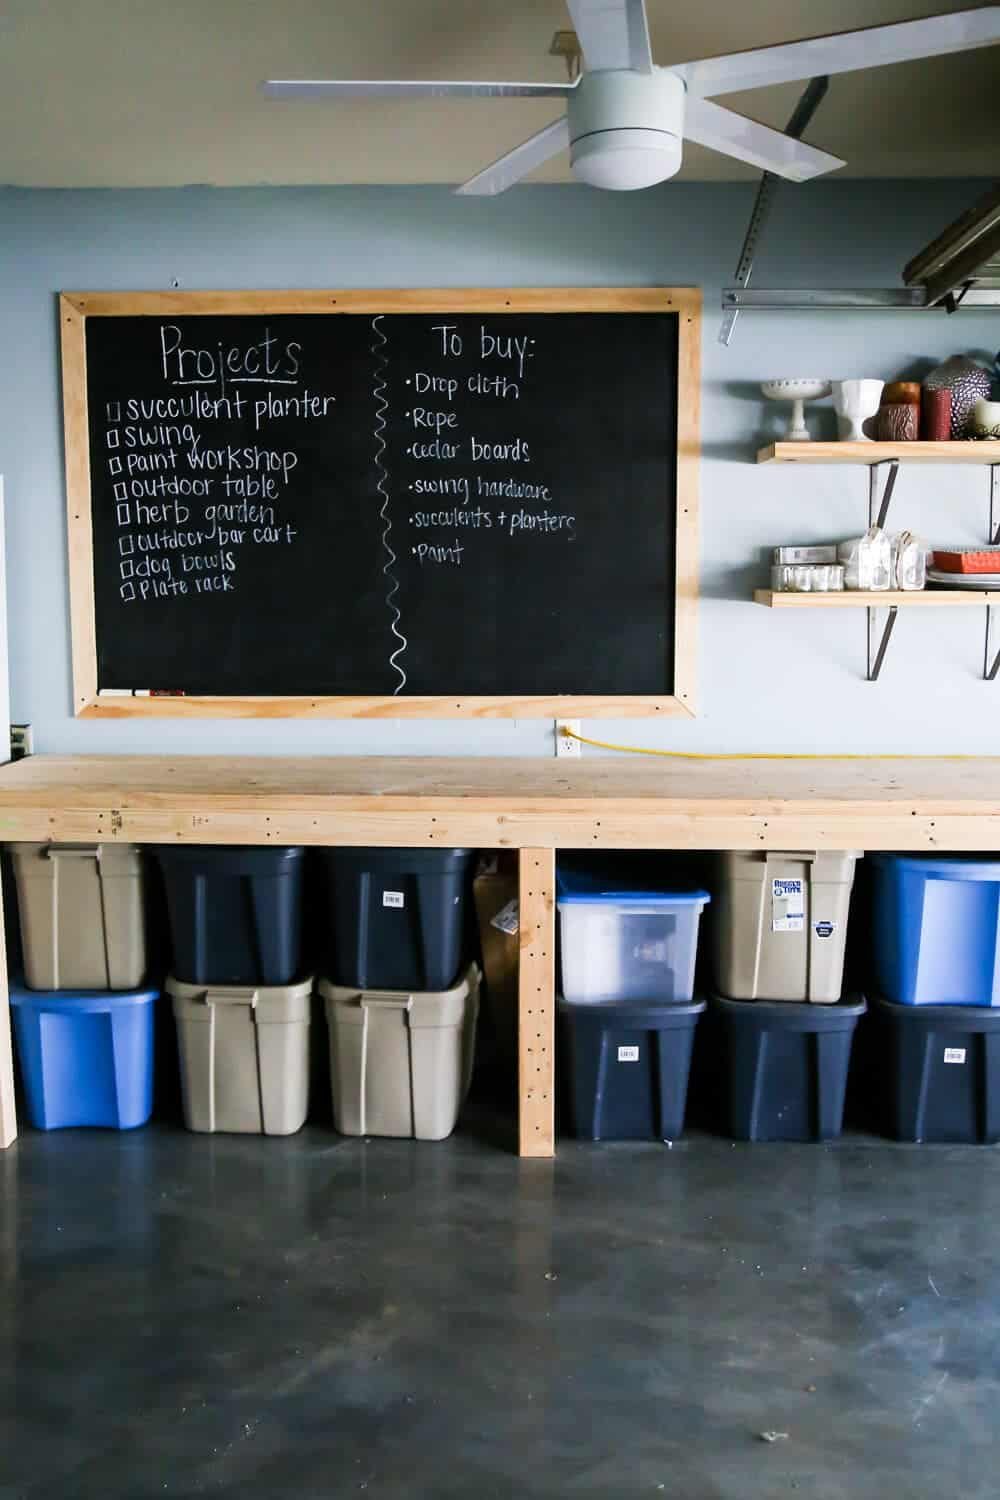 How to create a large-scale chalkboard on a wall in your home